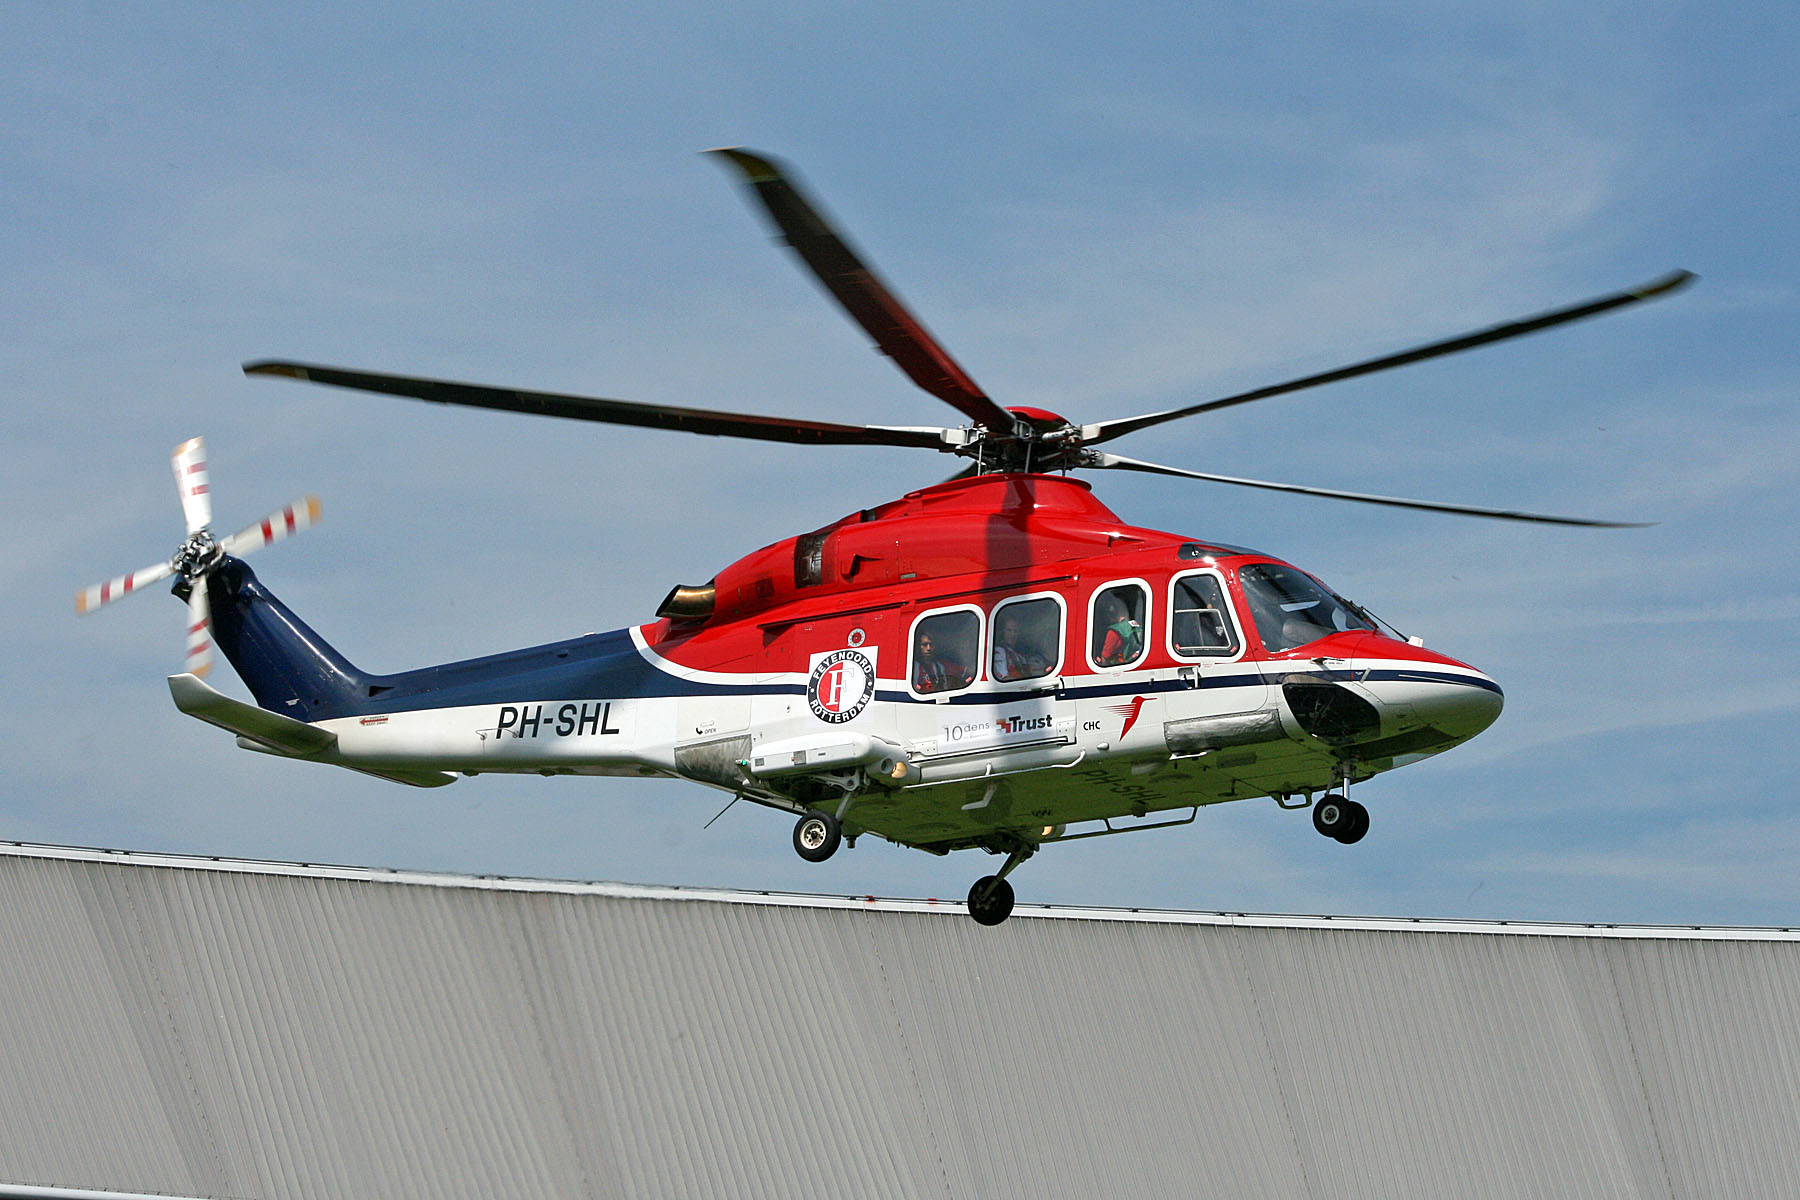 Telangana  Tourism offers Helicopter rides from January